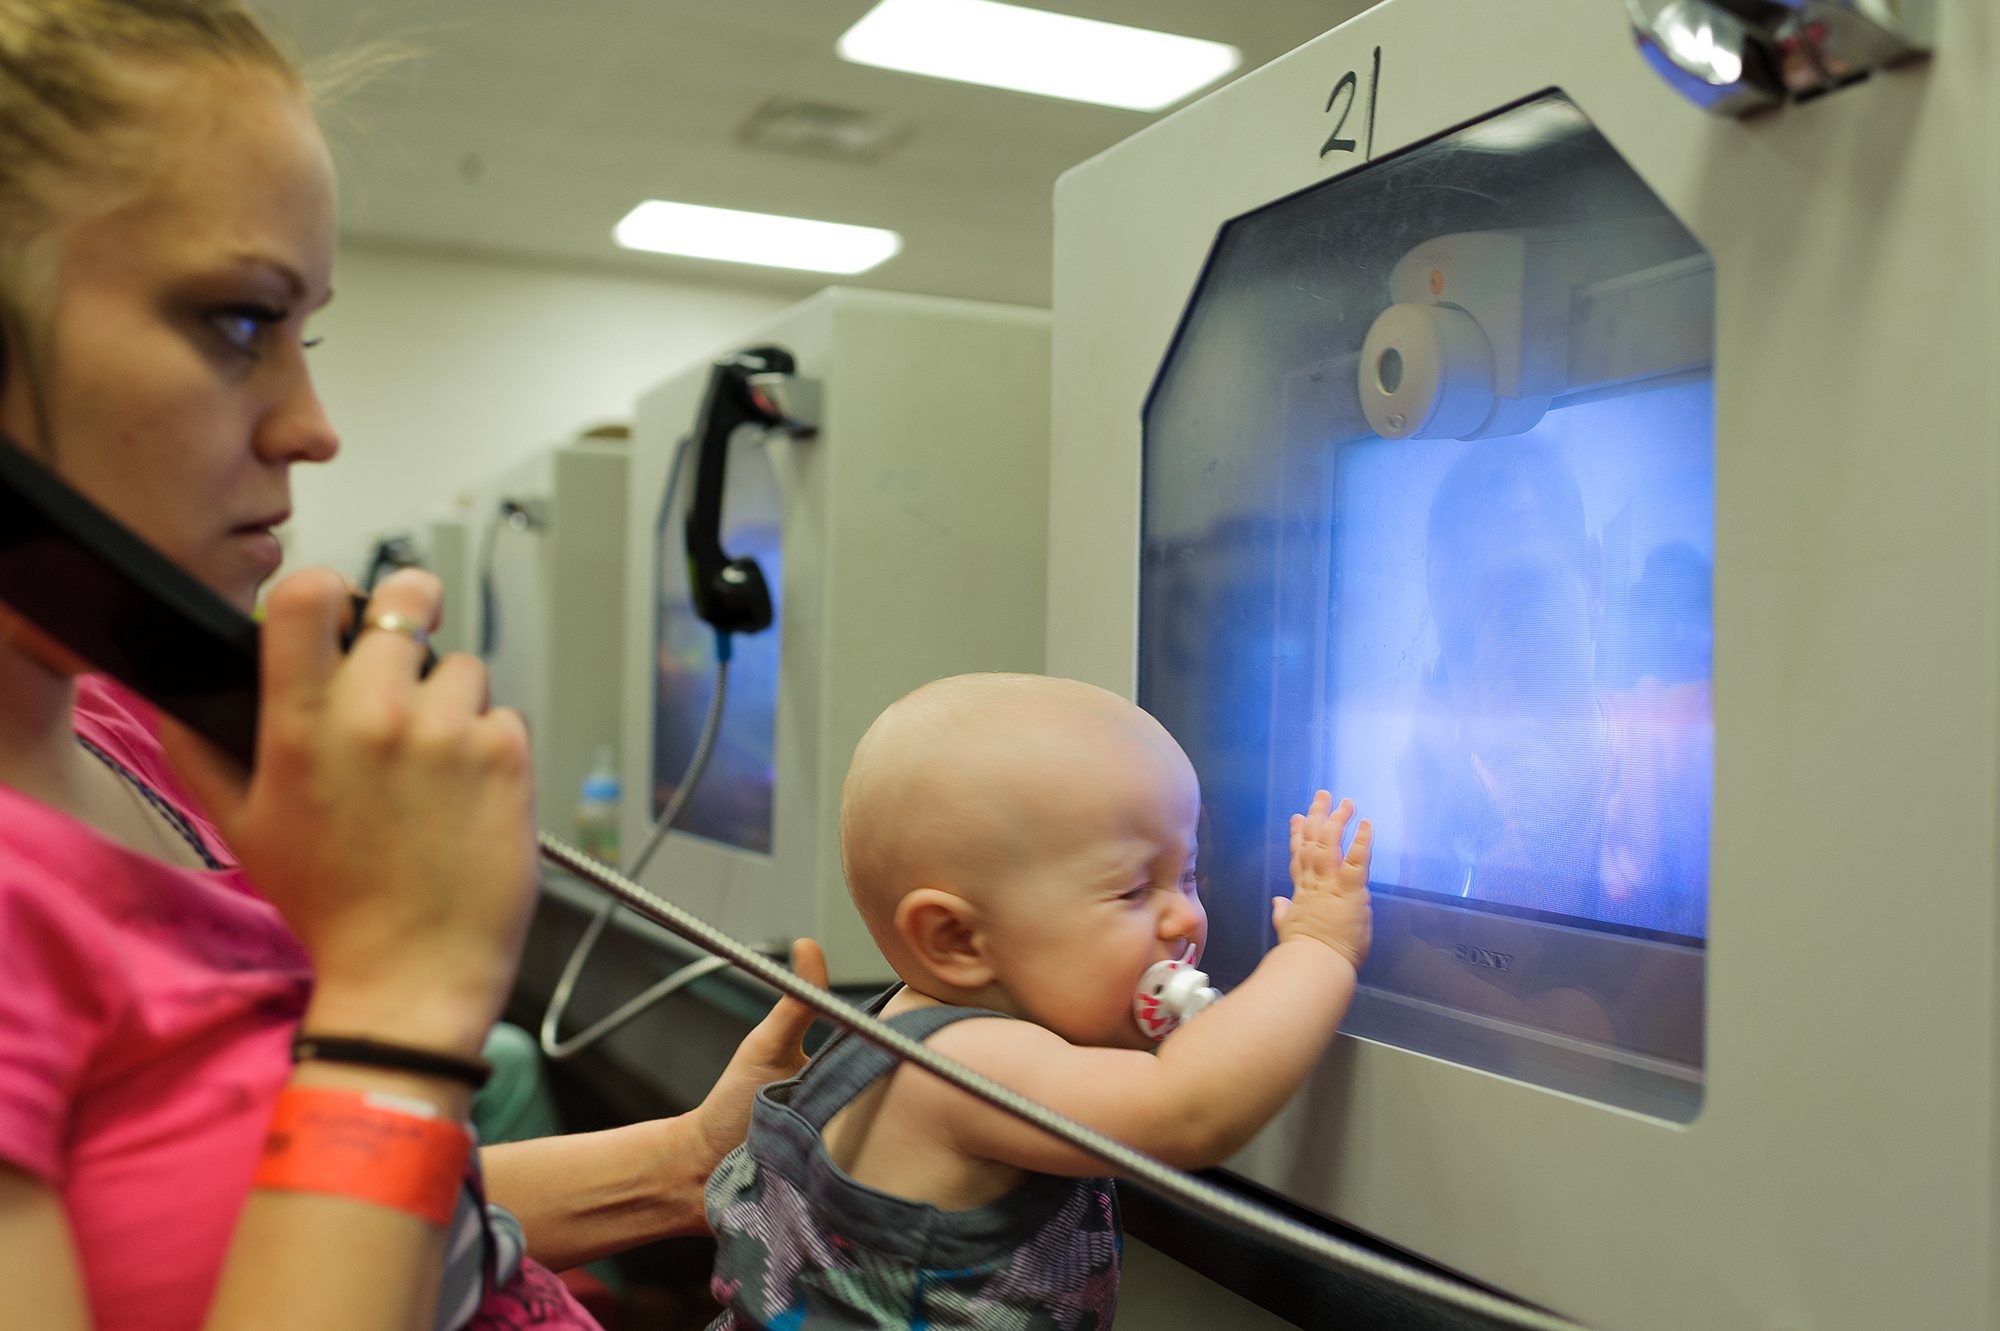 Felicia, age 20, and Lily, age 10 months, see David, age 20, through video visitation at the county jail, 2013.